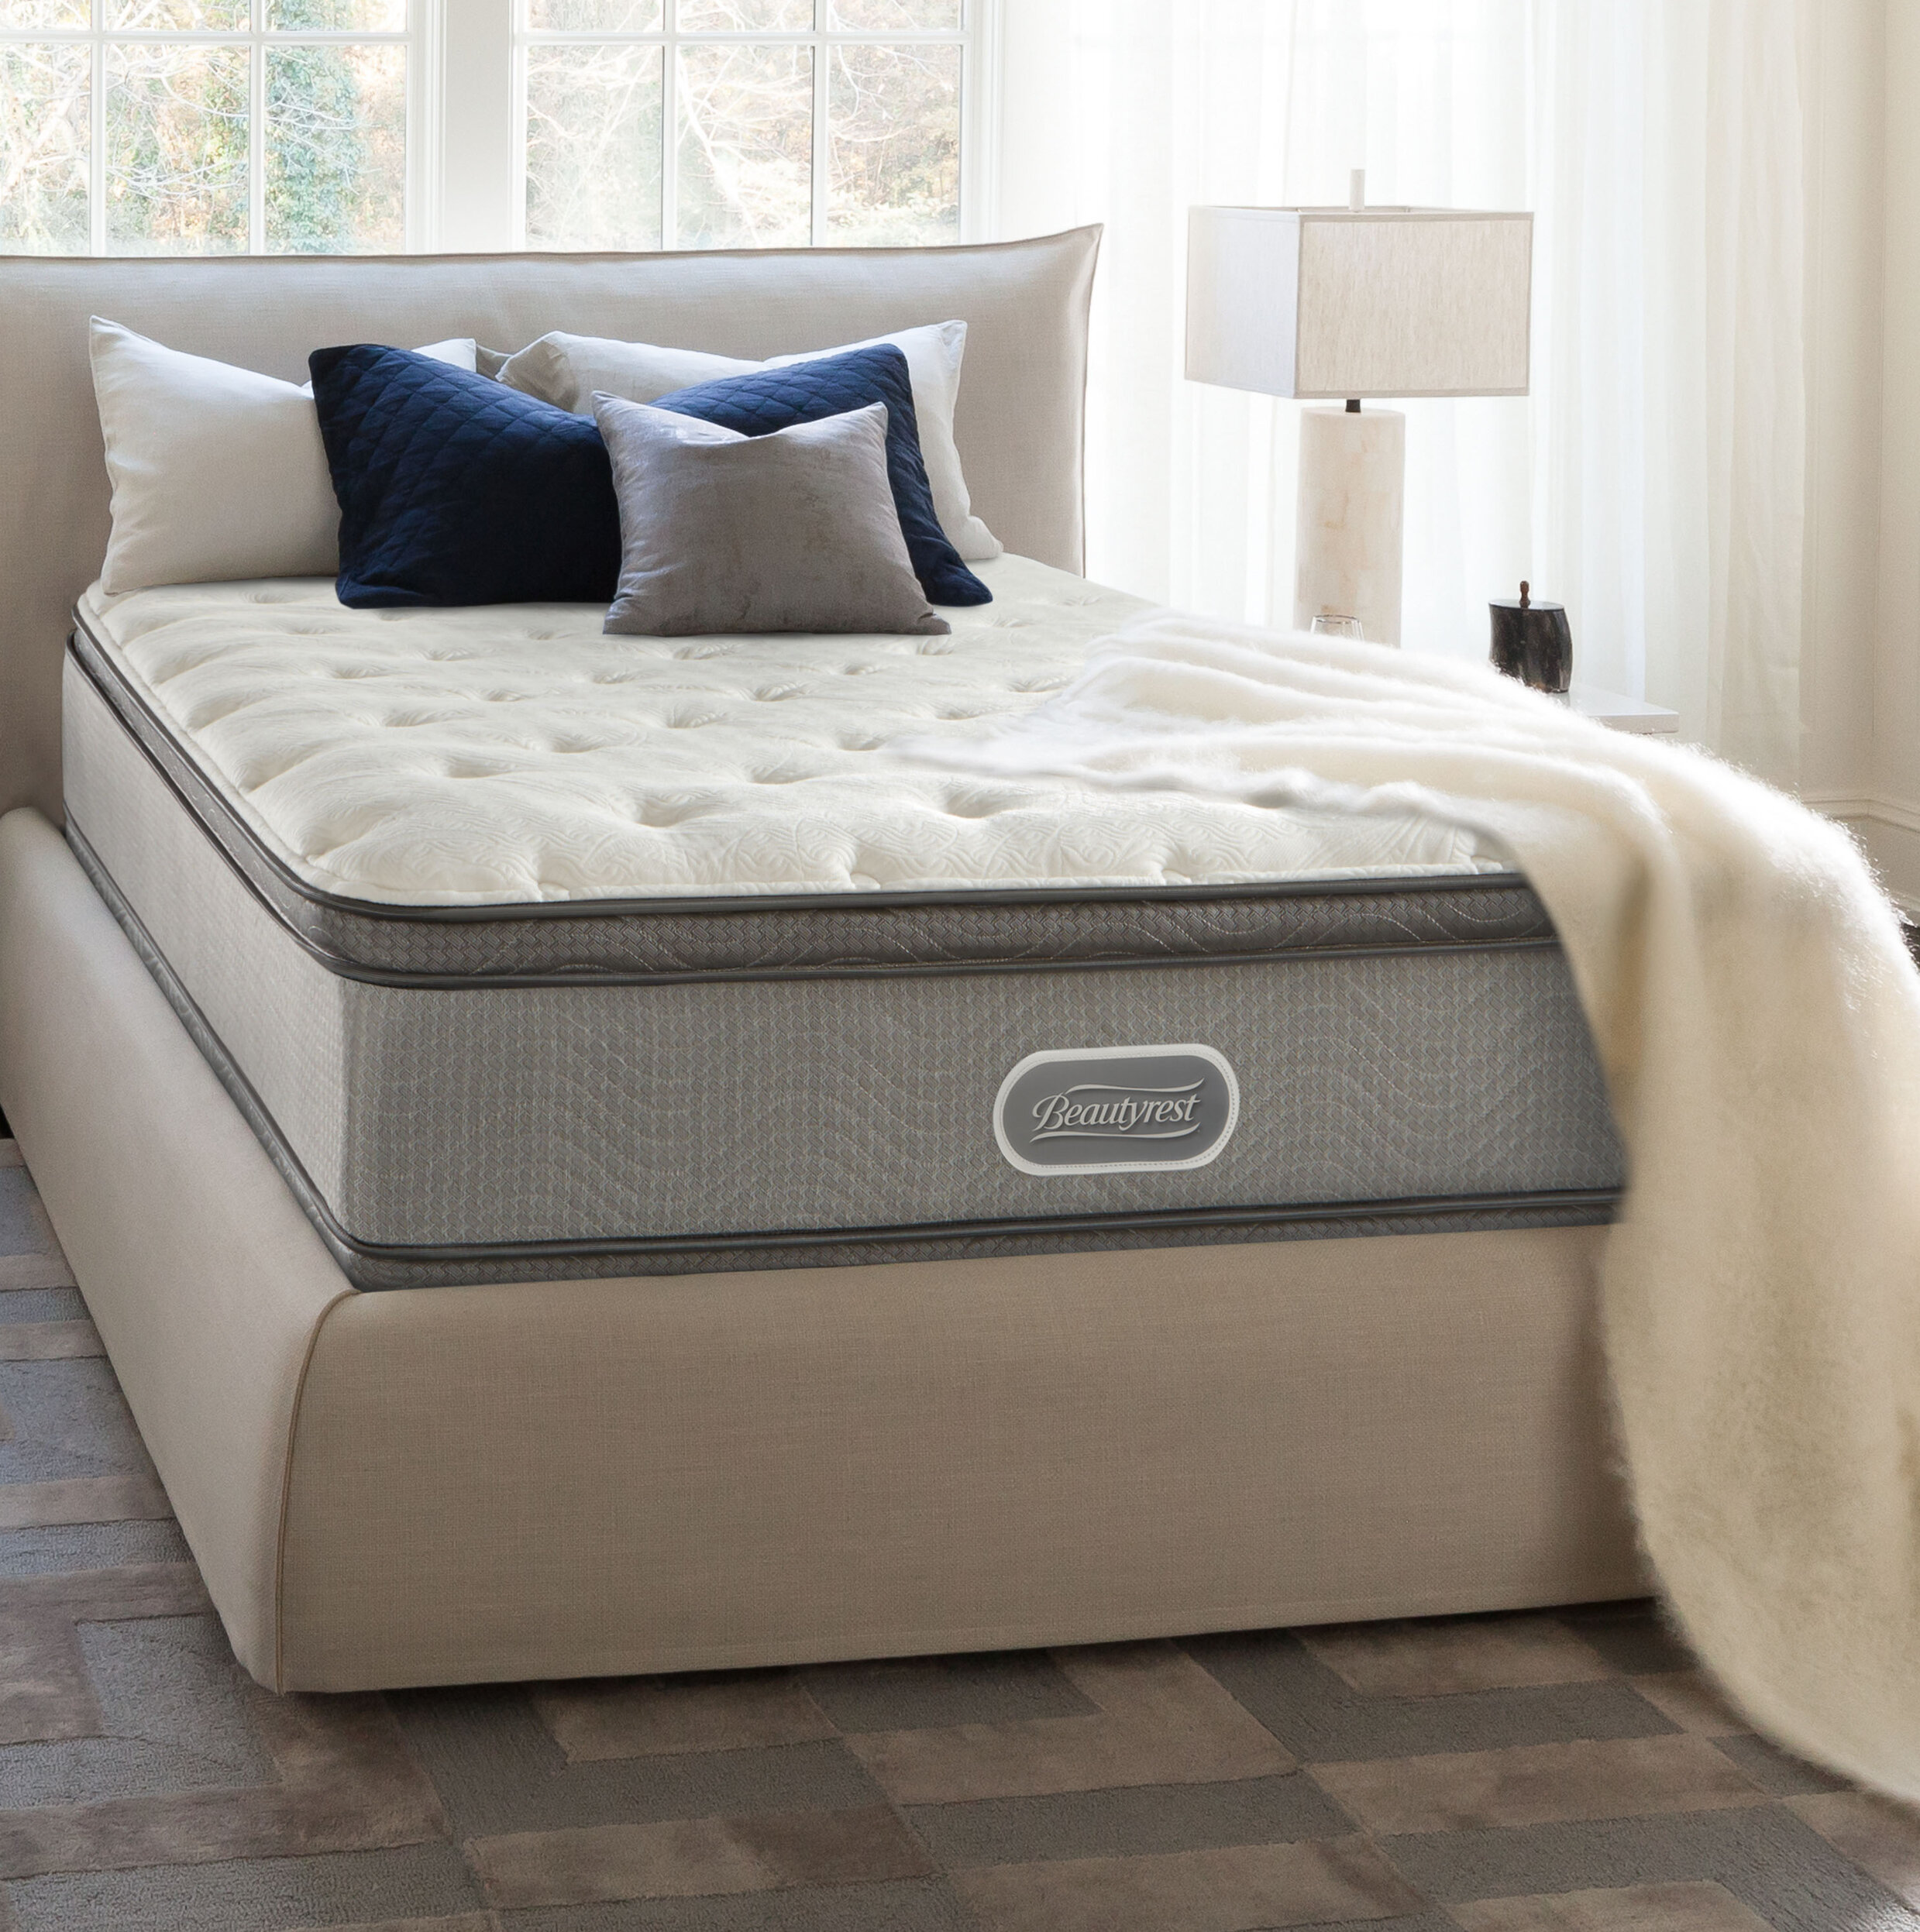 Simmons Beautyrest Beautyrest 12 Medium Pillow Top Mattress And Box